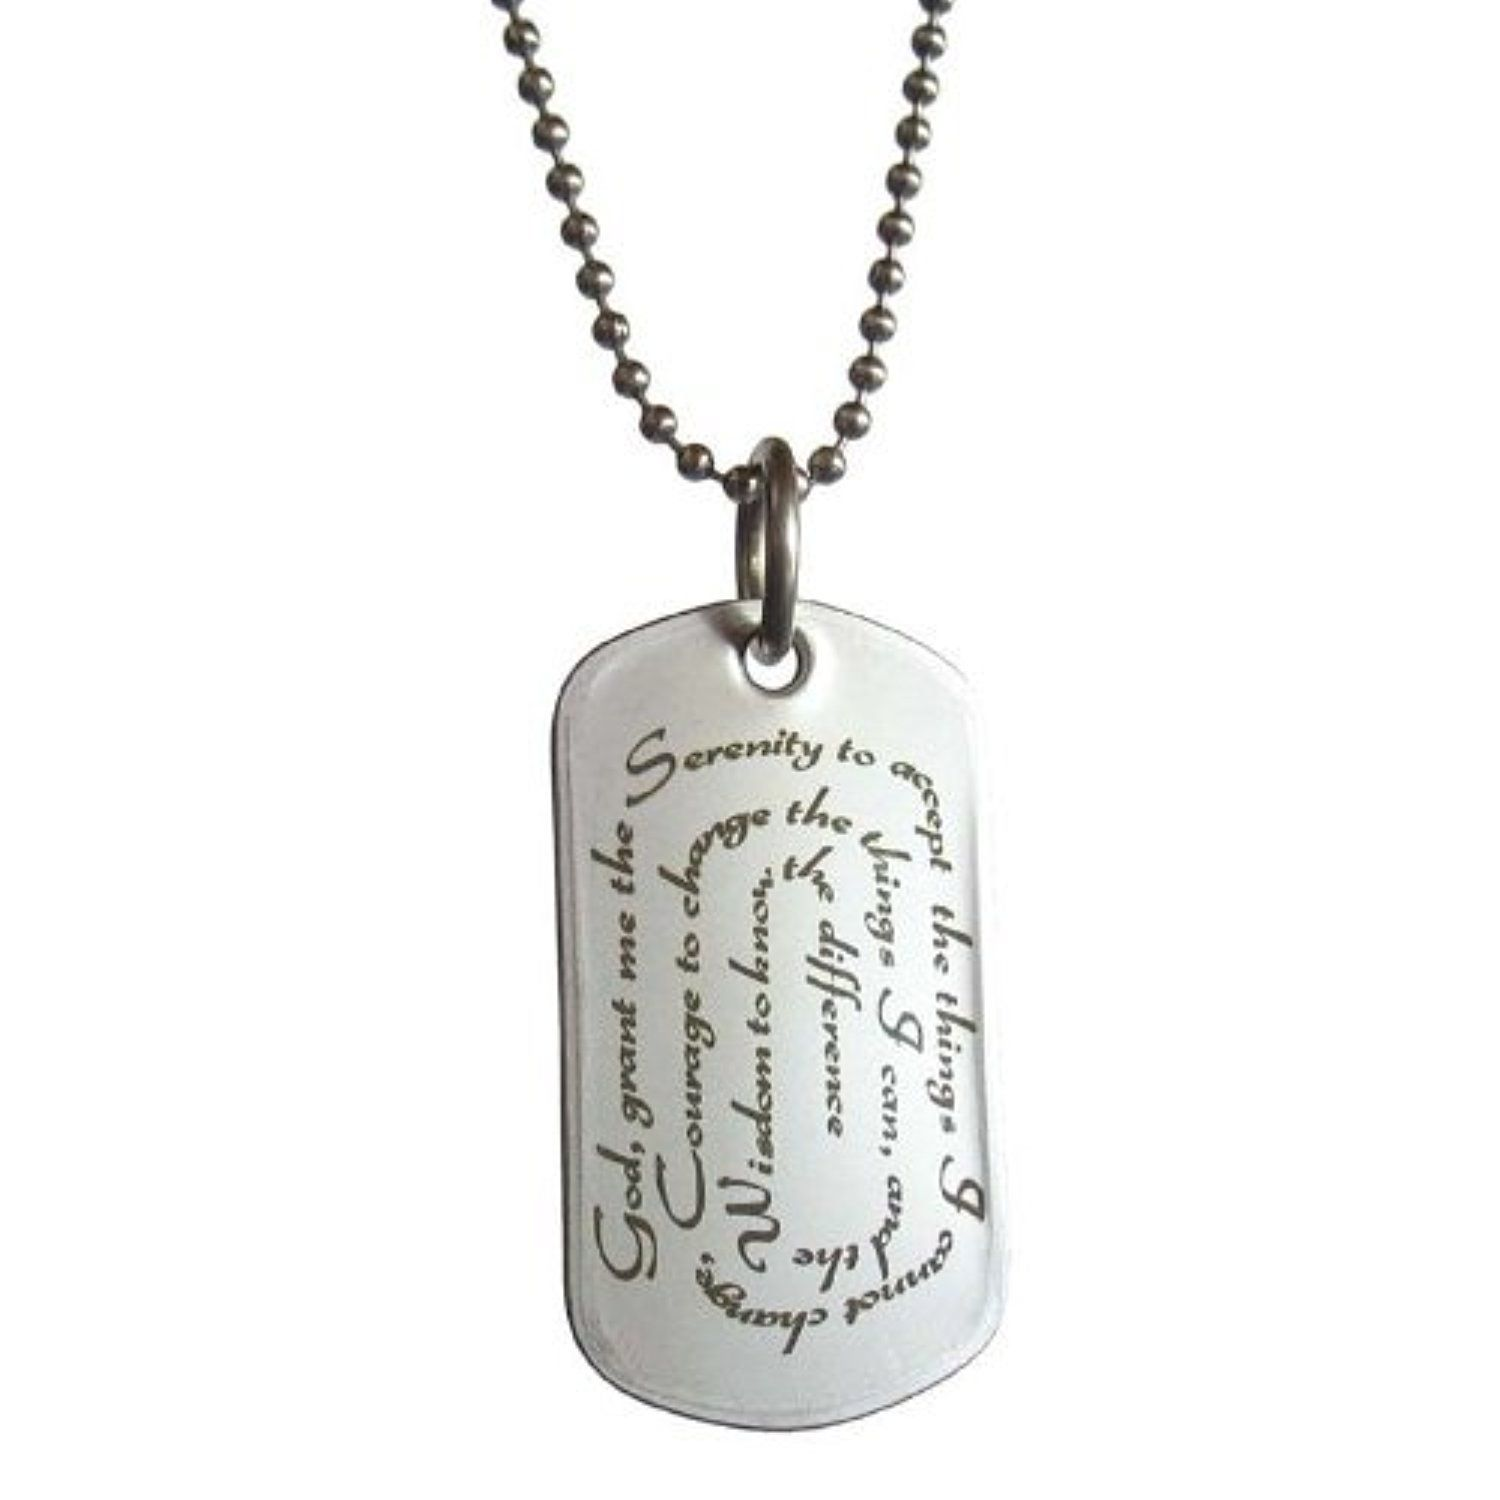 com from buy jewellery au fishpond online prayer original q necklace serenity c